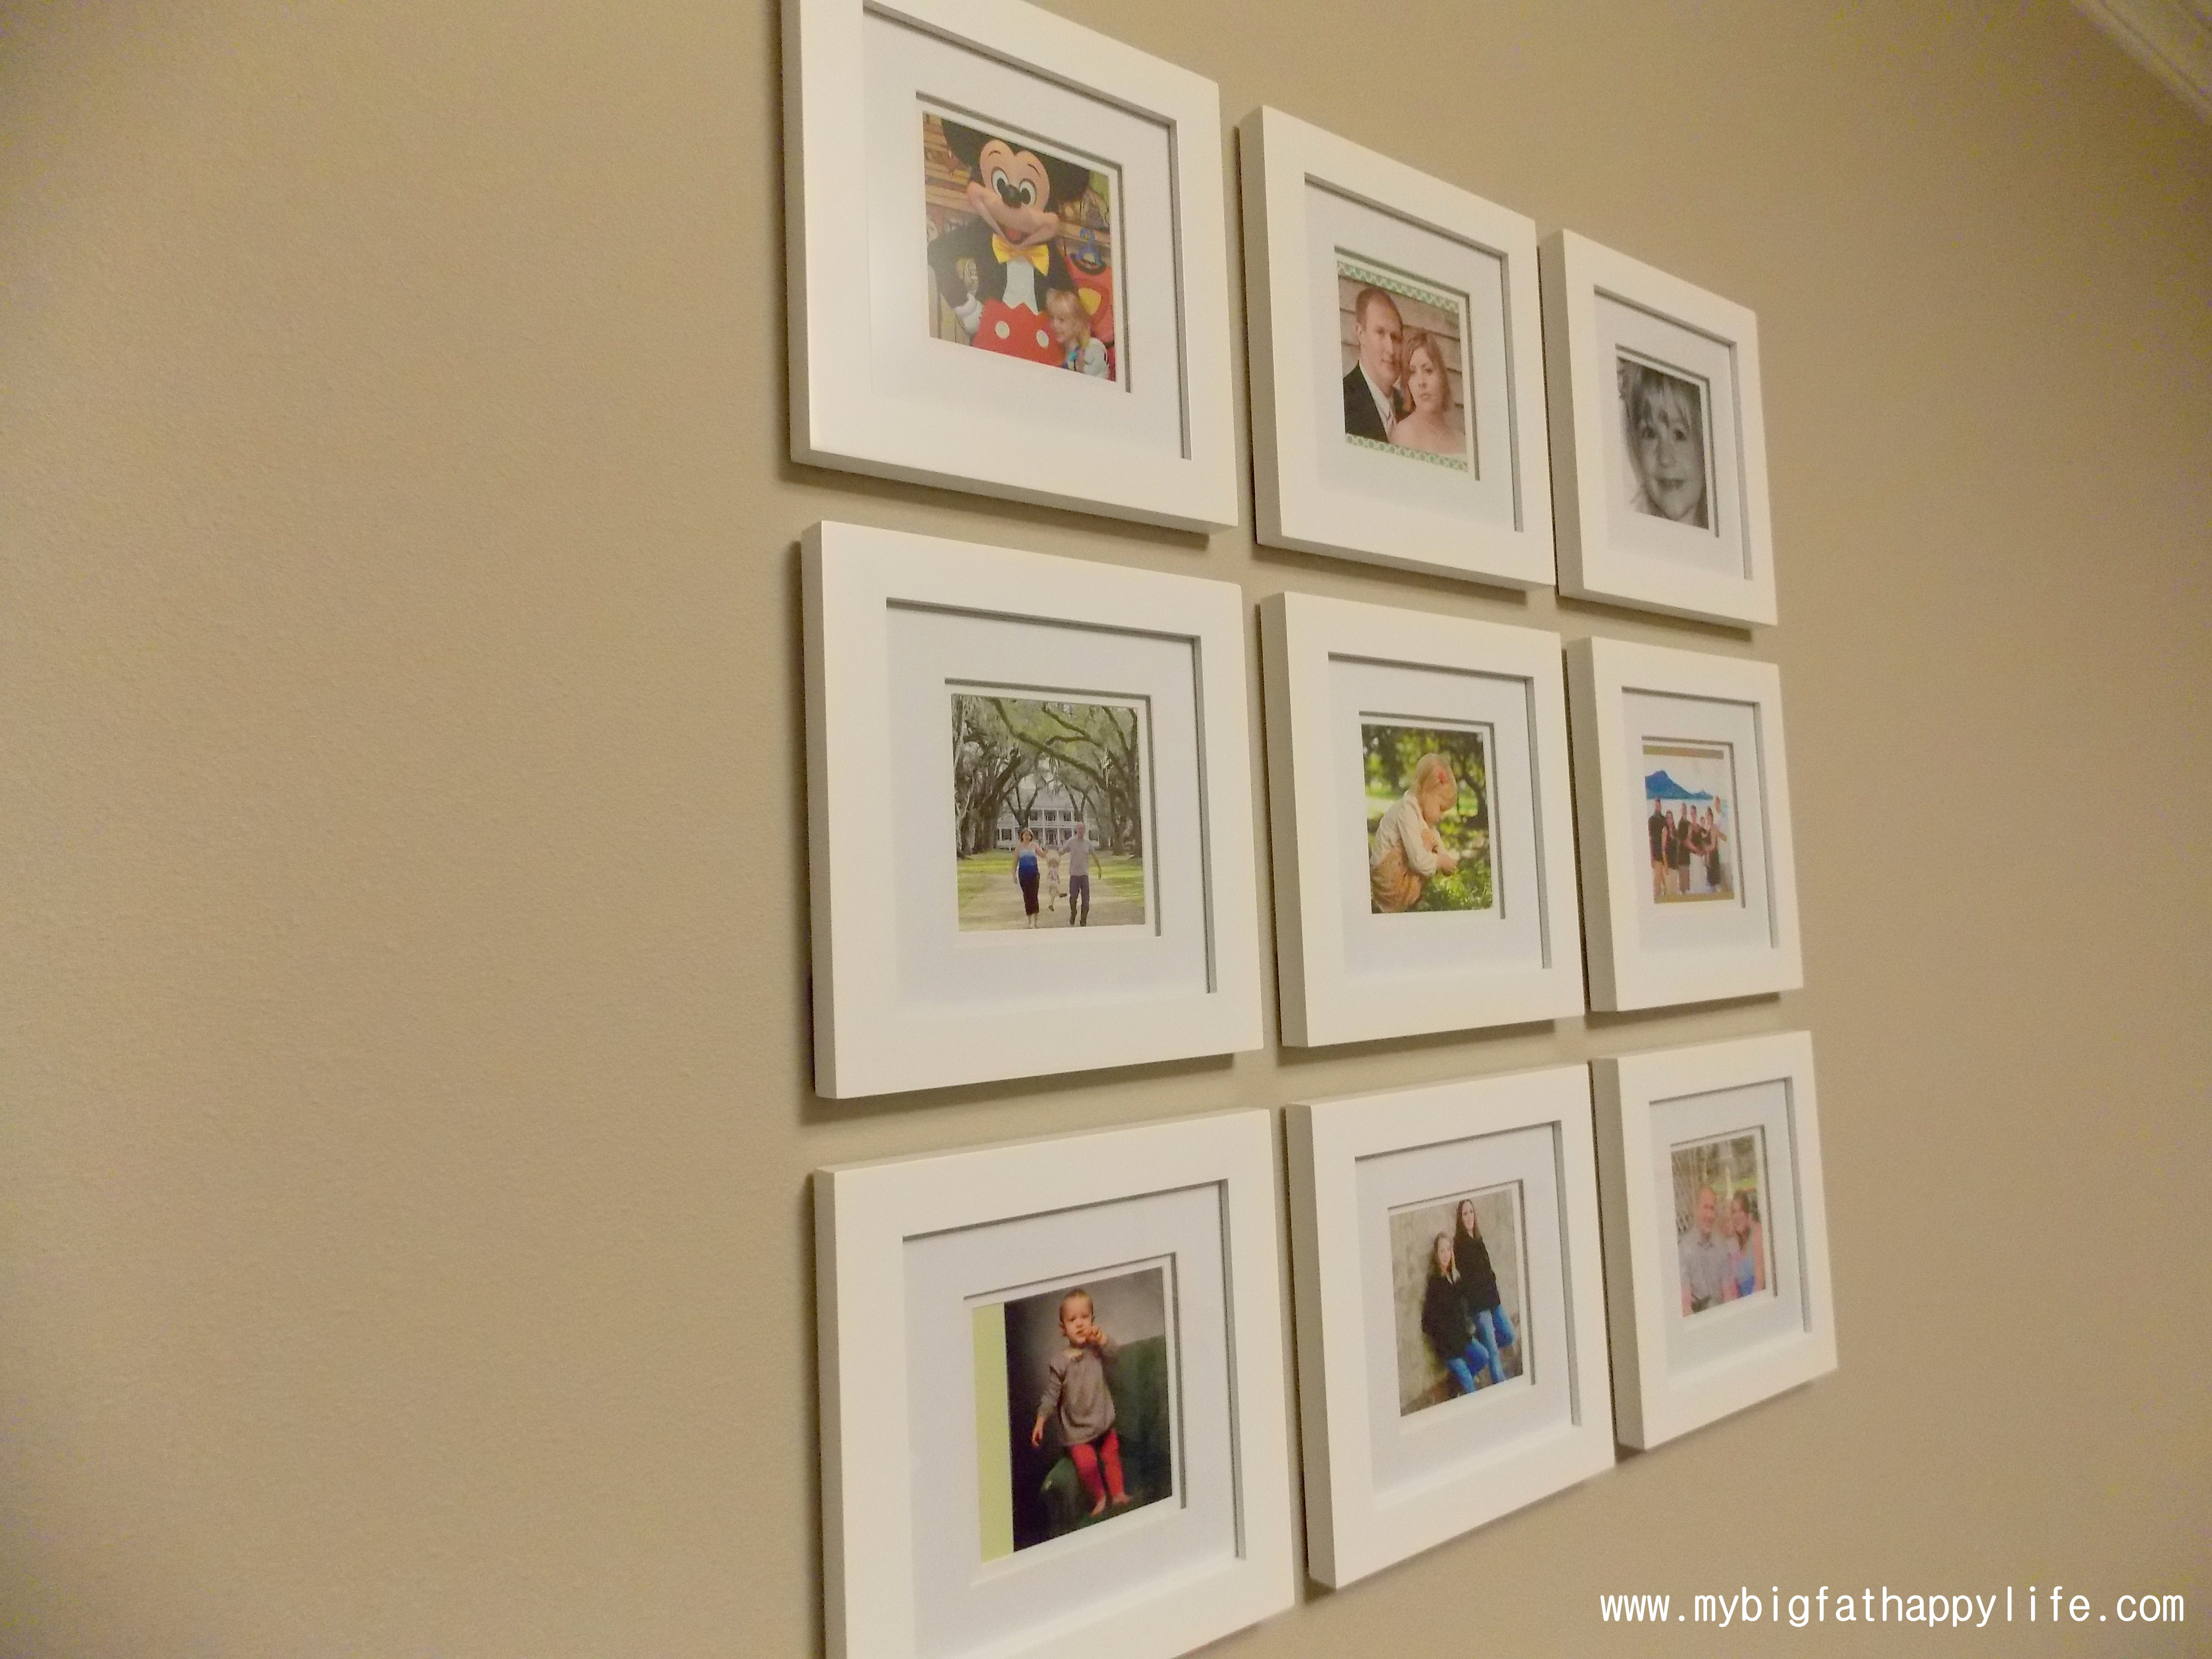 Arranging Multiple Picture Frames on the Wall - My Big Fat Happy Life